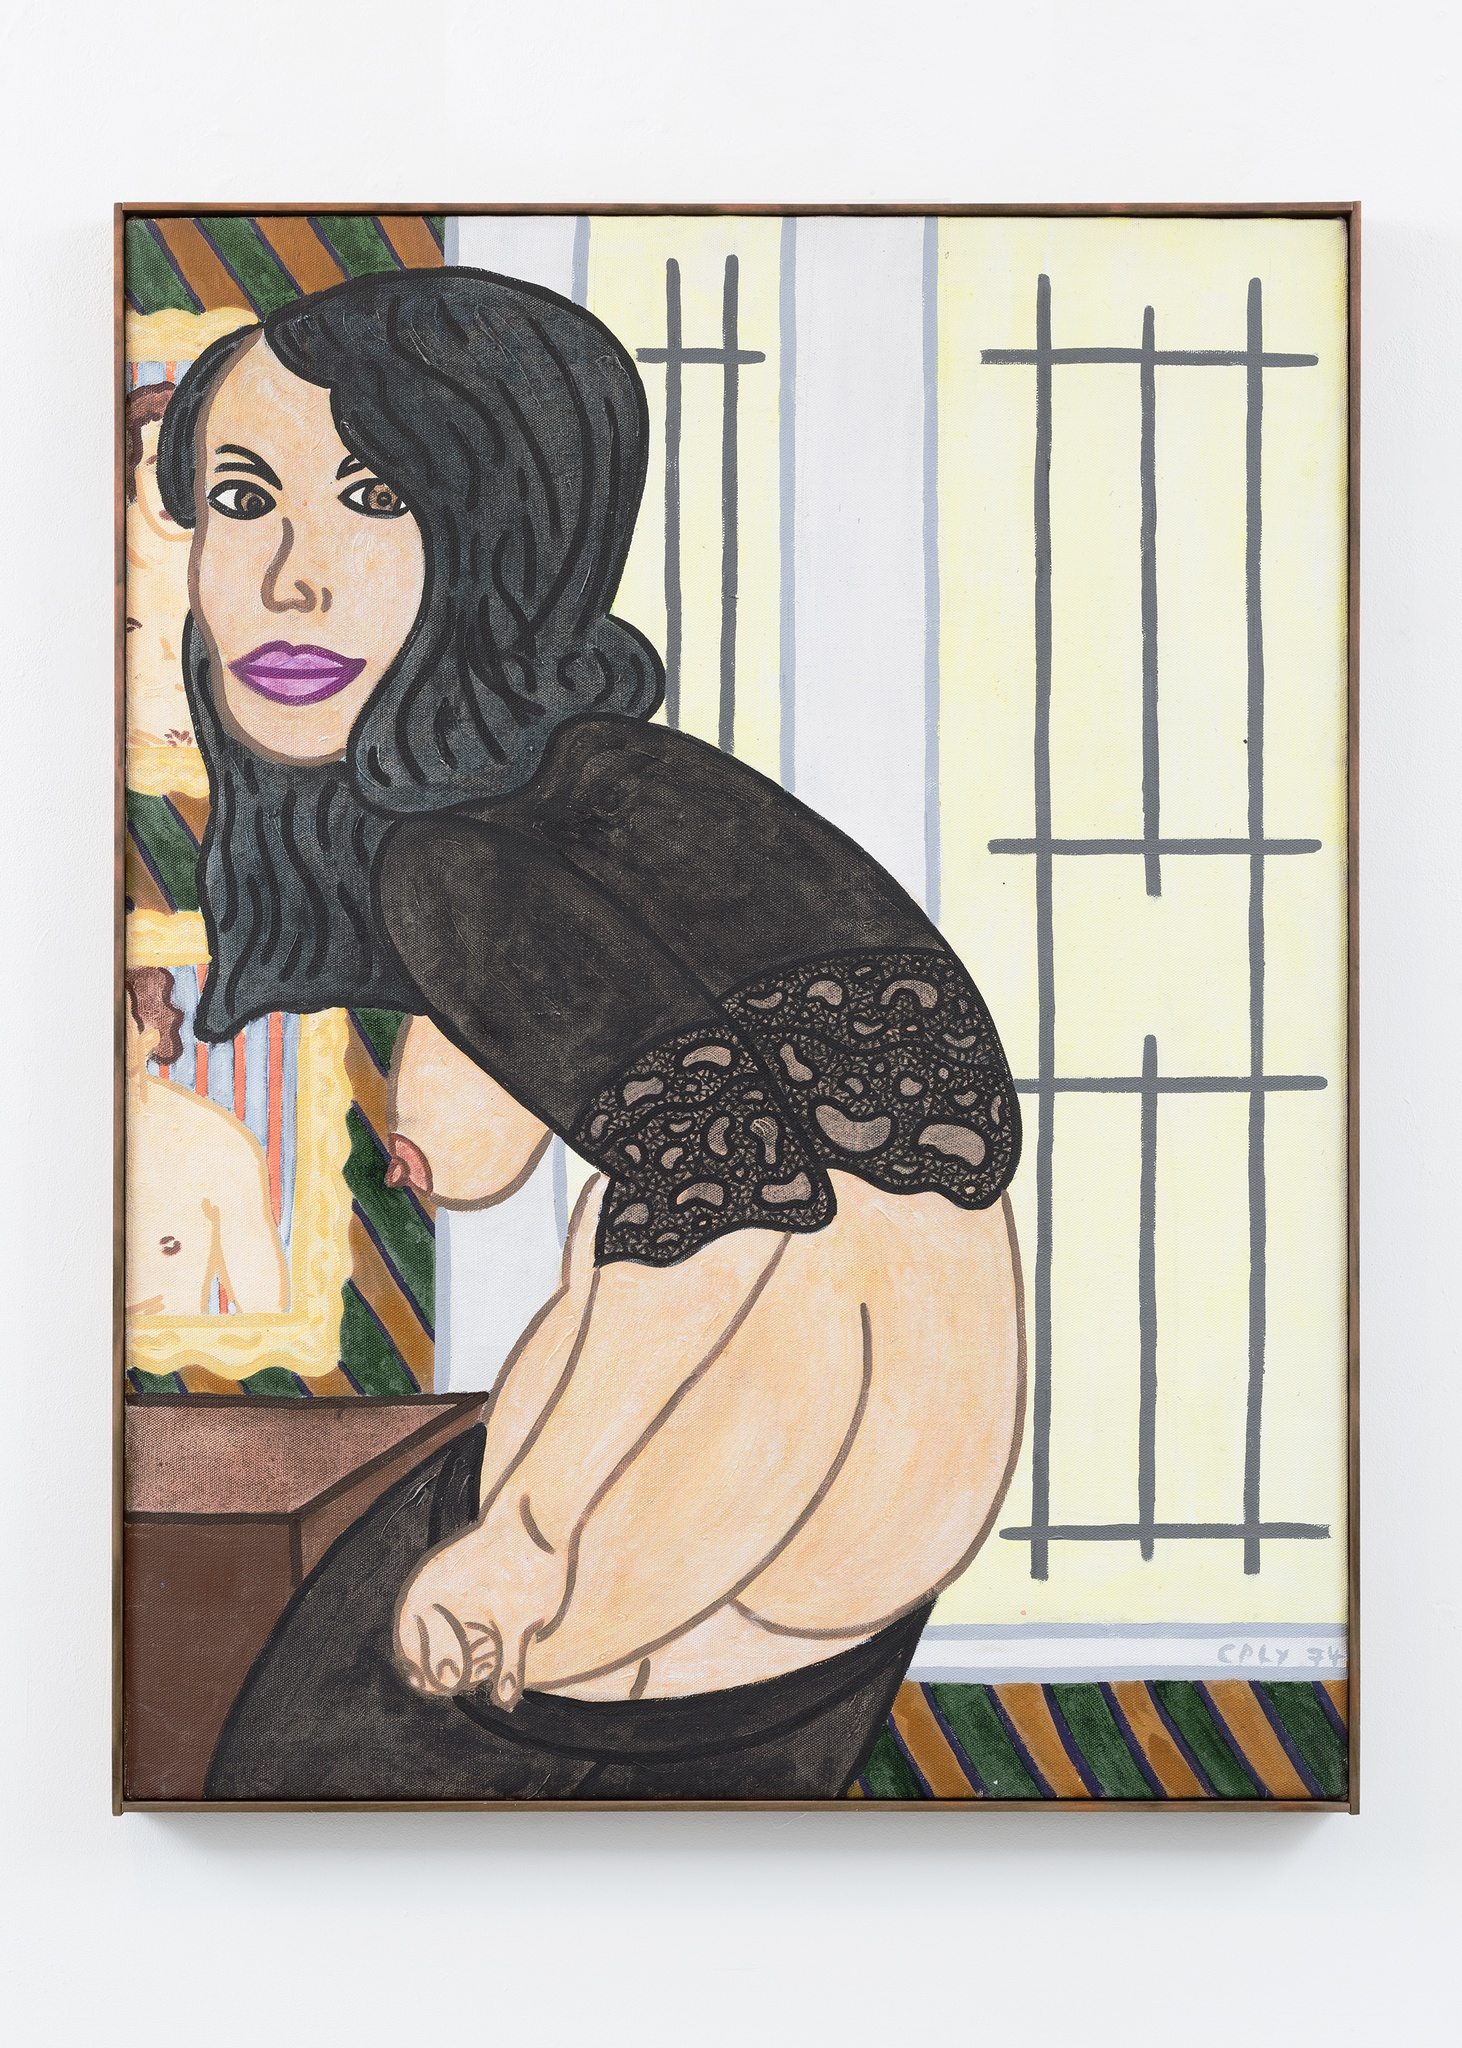 William N. Copley The Happy Hooker, 1974 acrylic on linen Courtesy of William N. Copley Estate and Paul Kasmin Gallery New York. © 2016 Estate of William N. Copley / Copley LLC / Artists Rights Society (ARS), New York